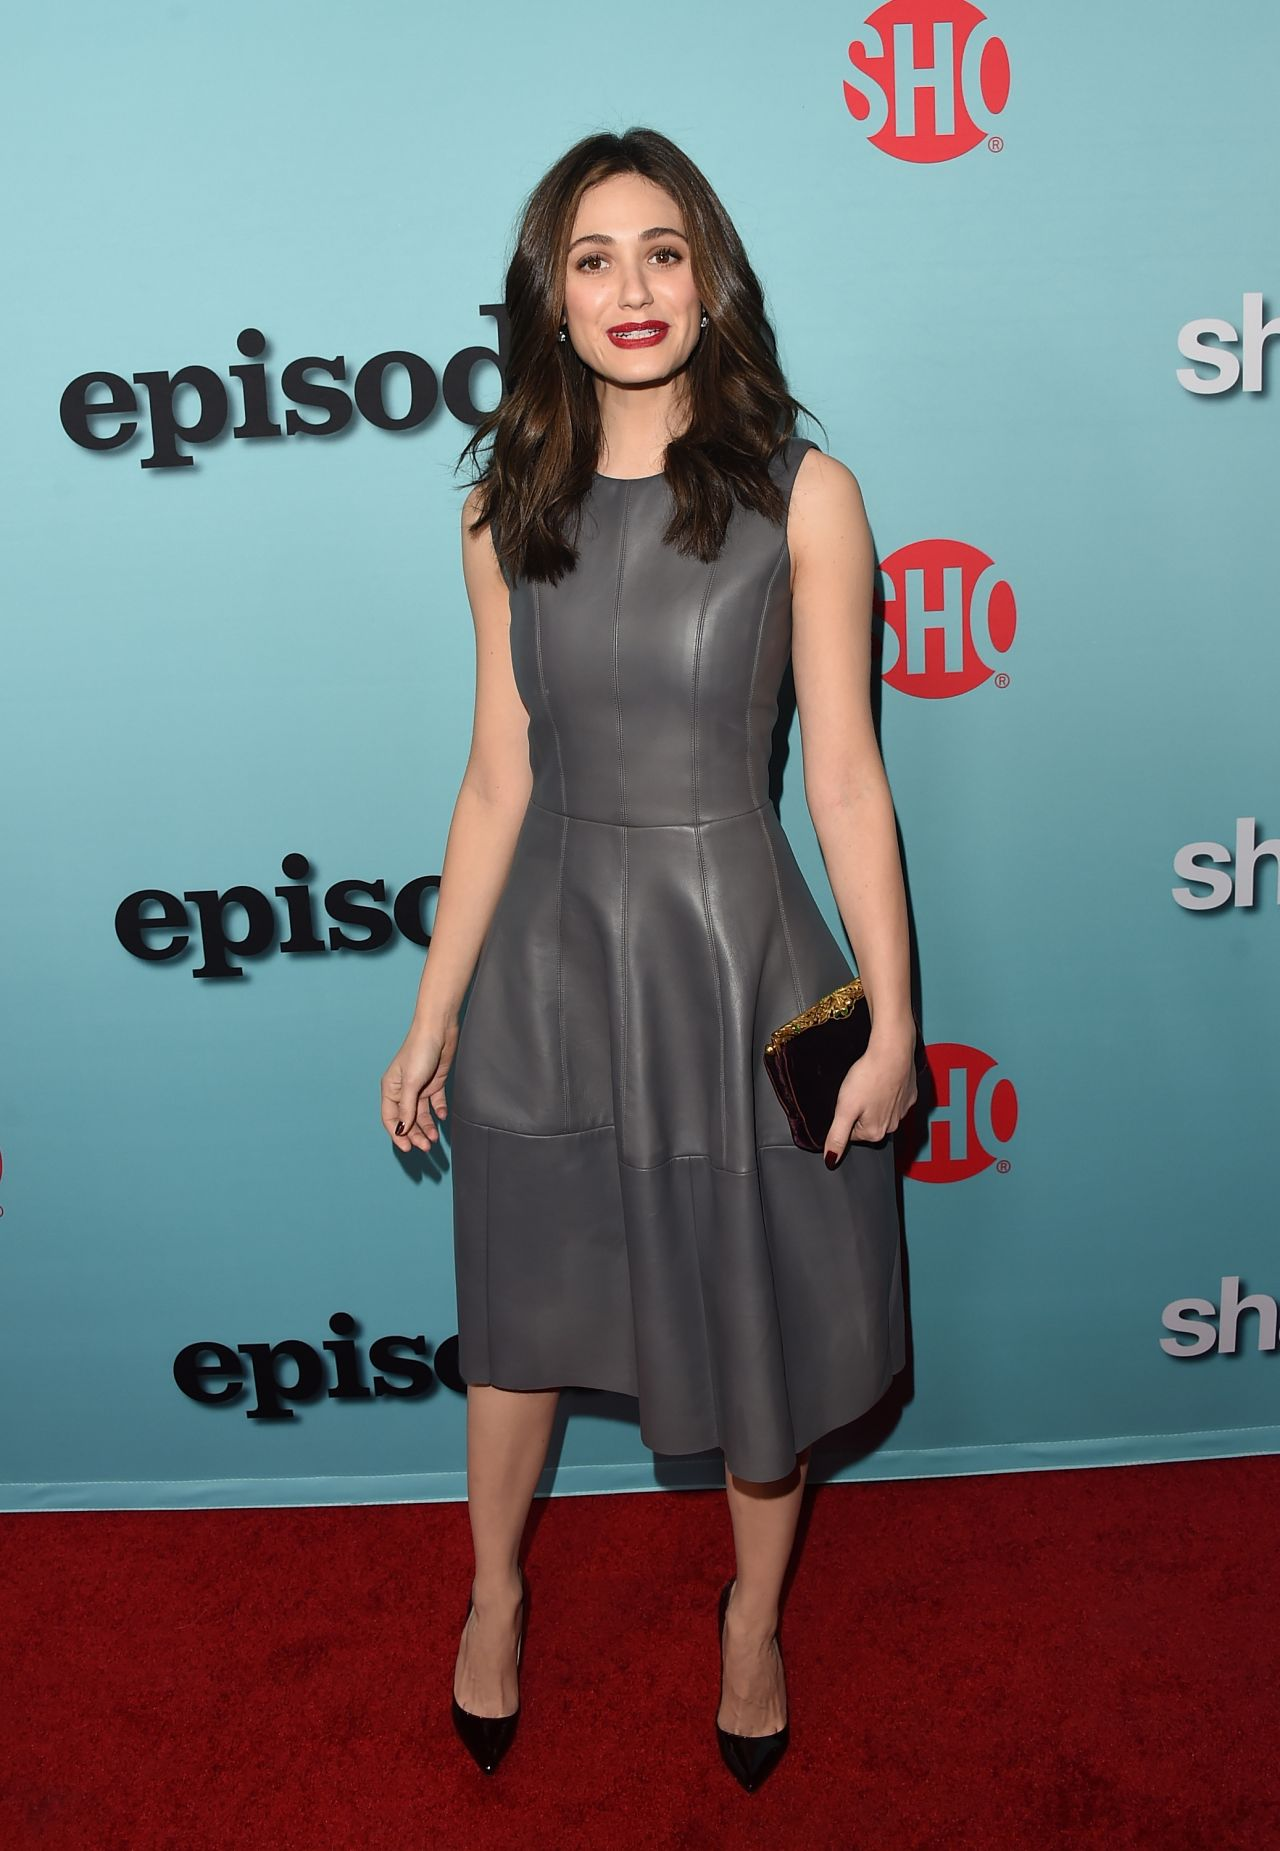 emmy-rossum-shameless-house-of-lies-and-episodes-premiere-in-west-hollywood_15